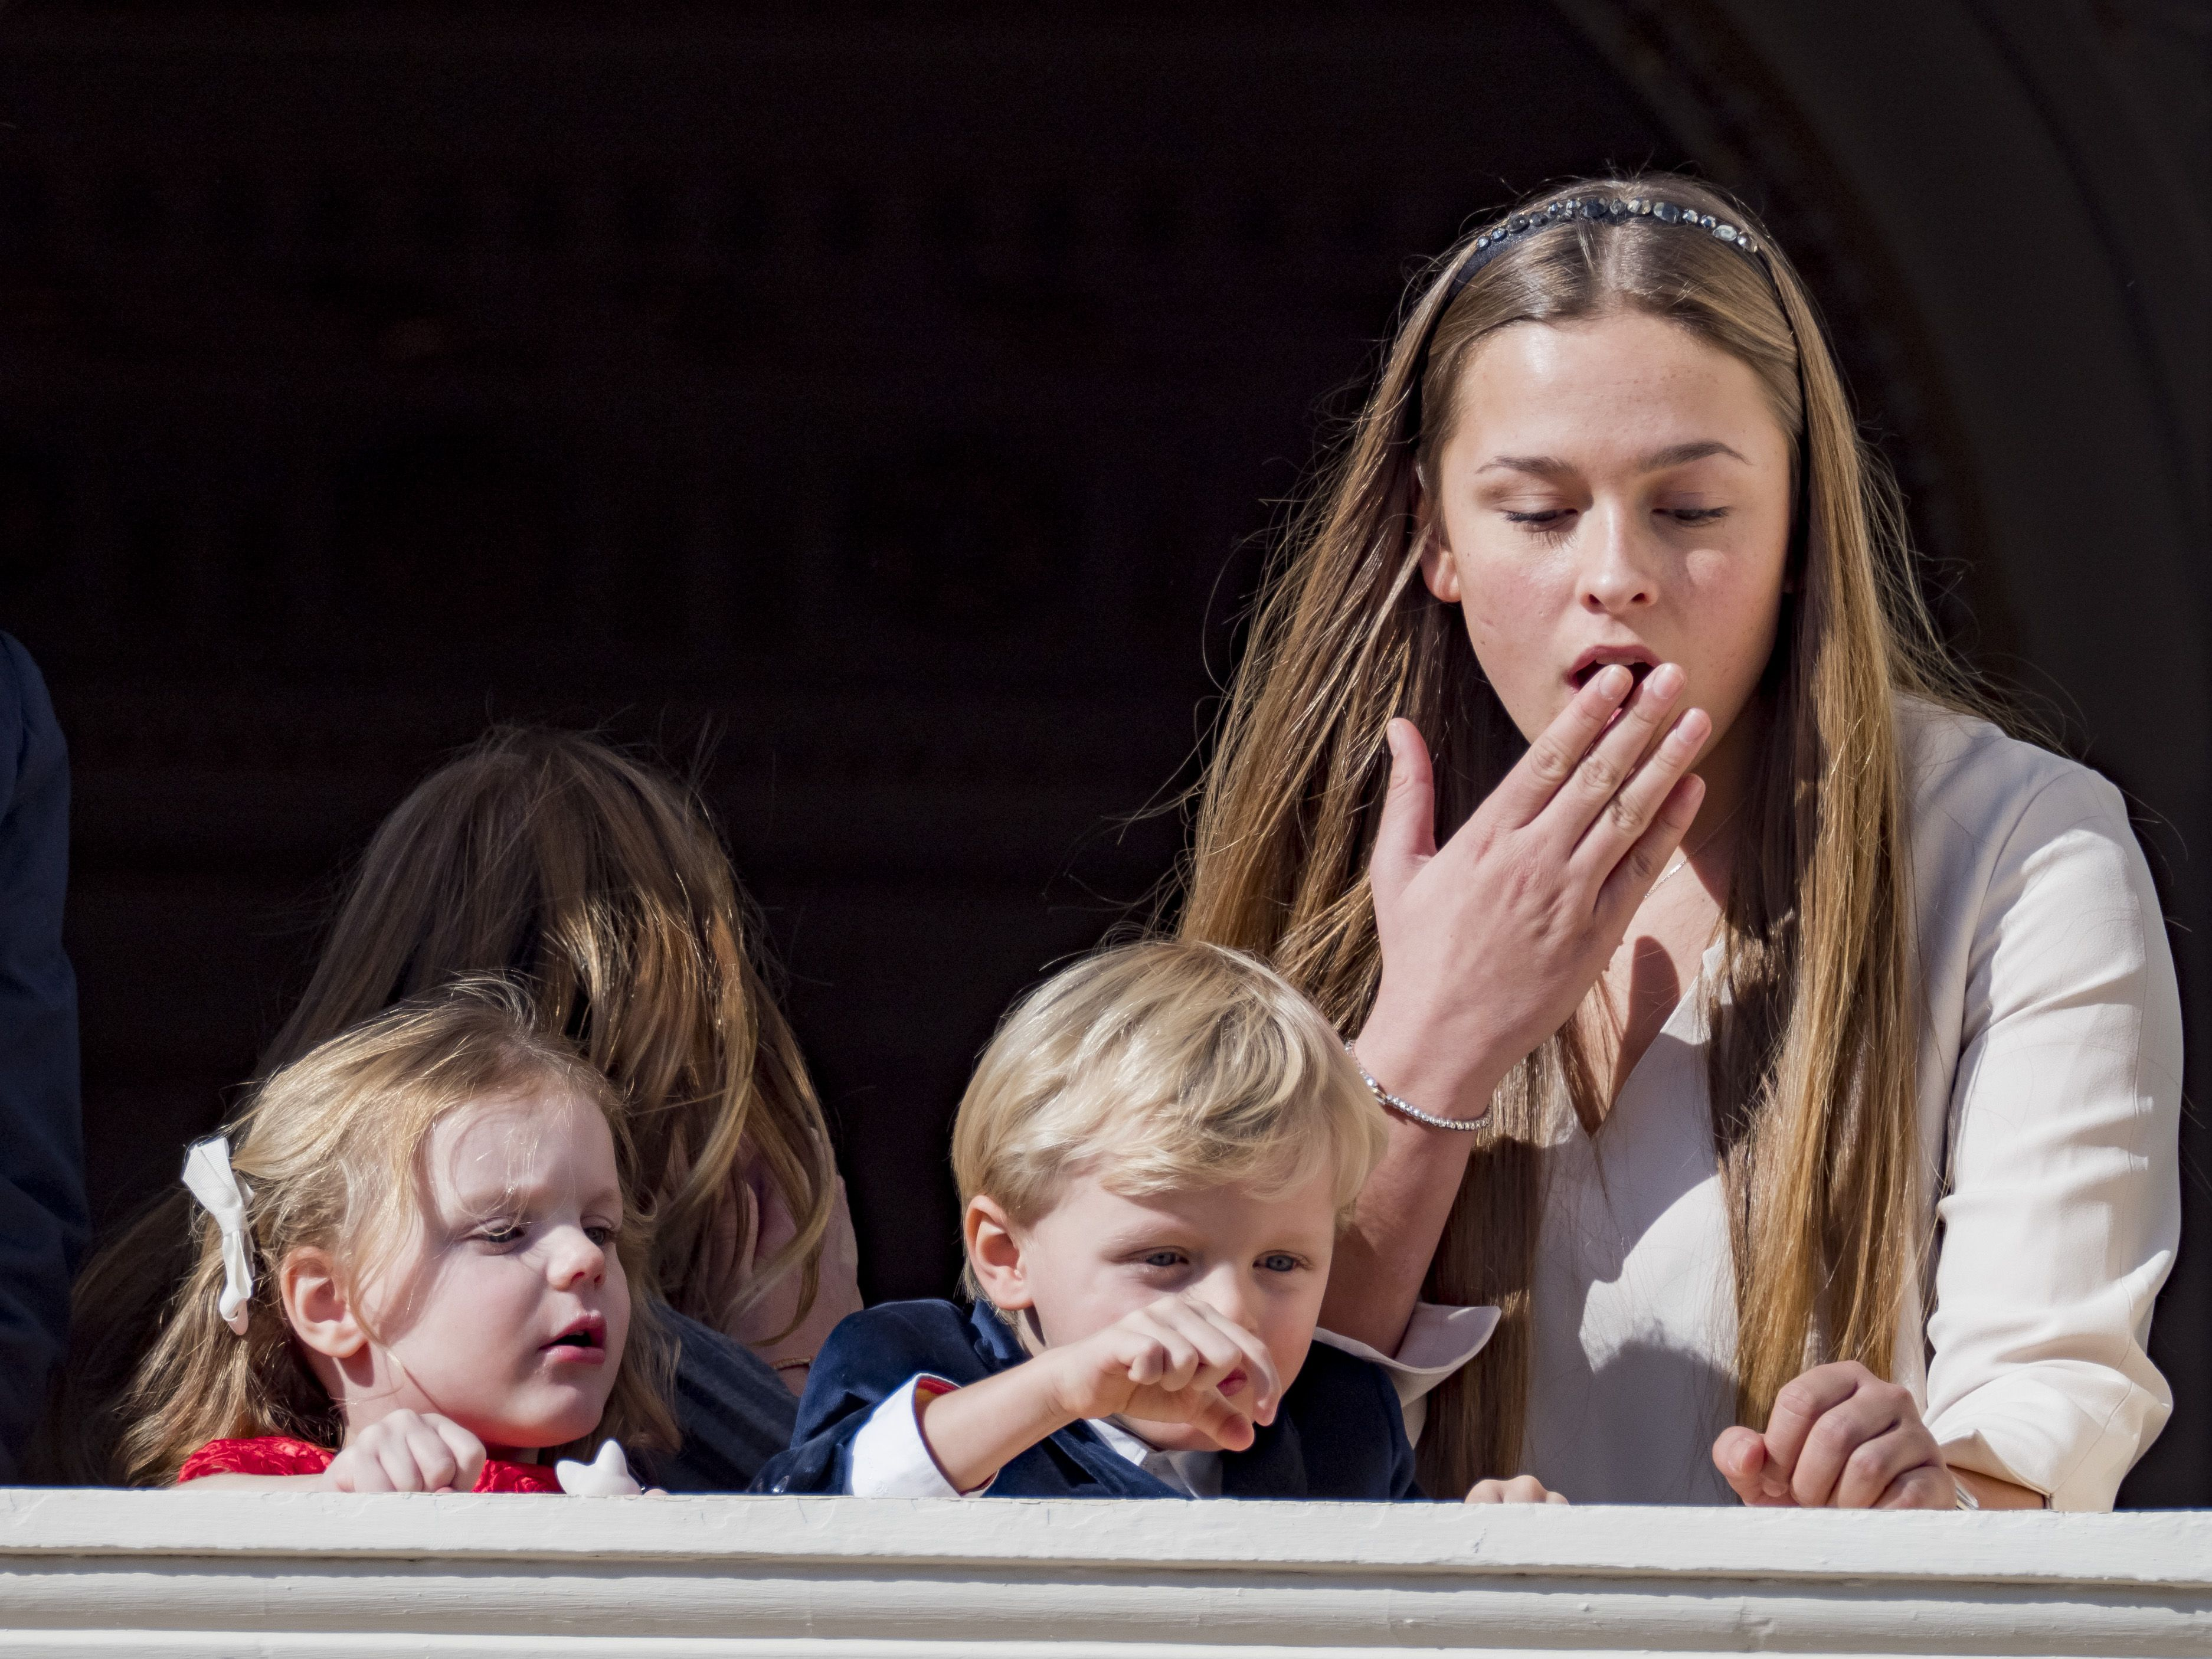 Photos of Prince Jacques Dropping His Action Figure from the Royal